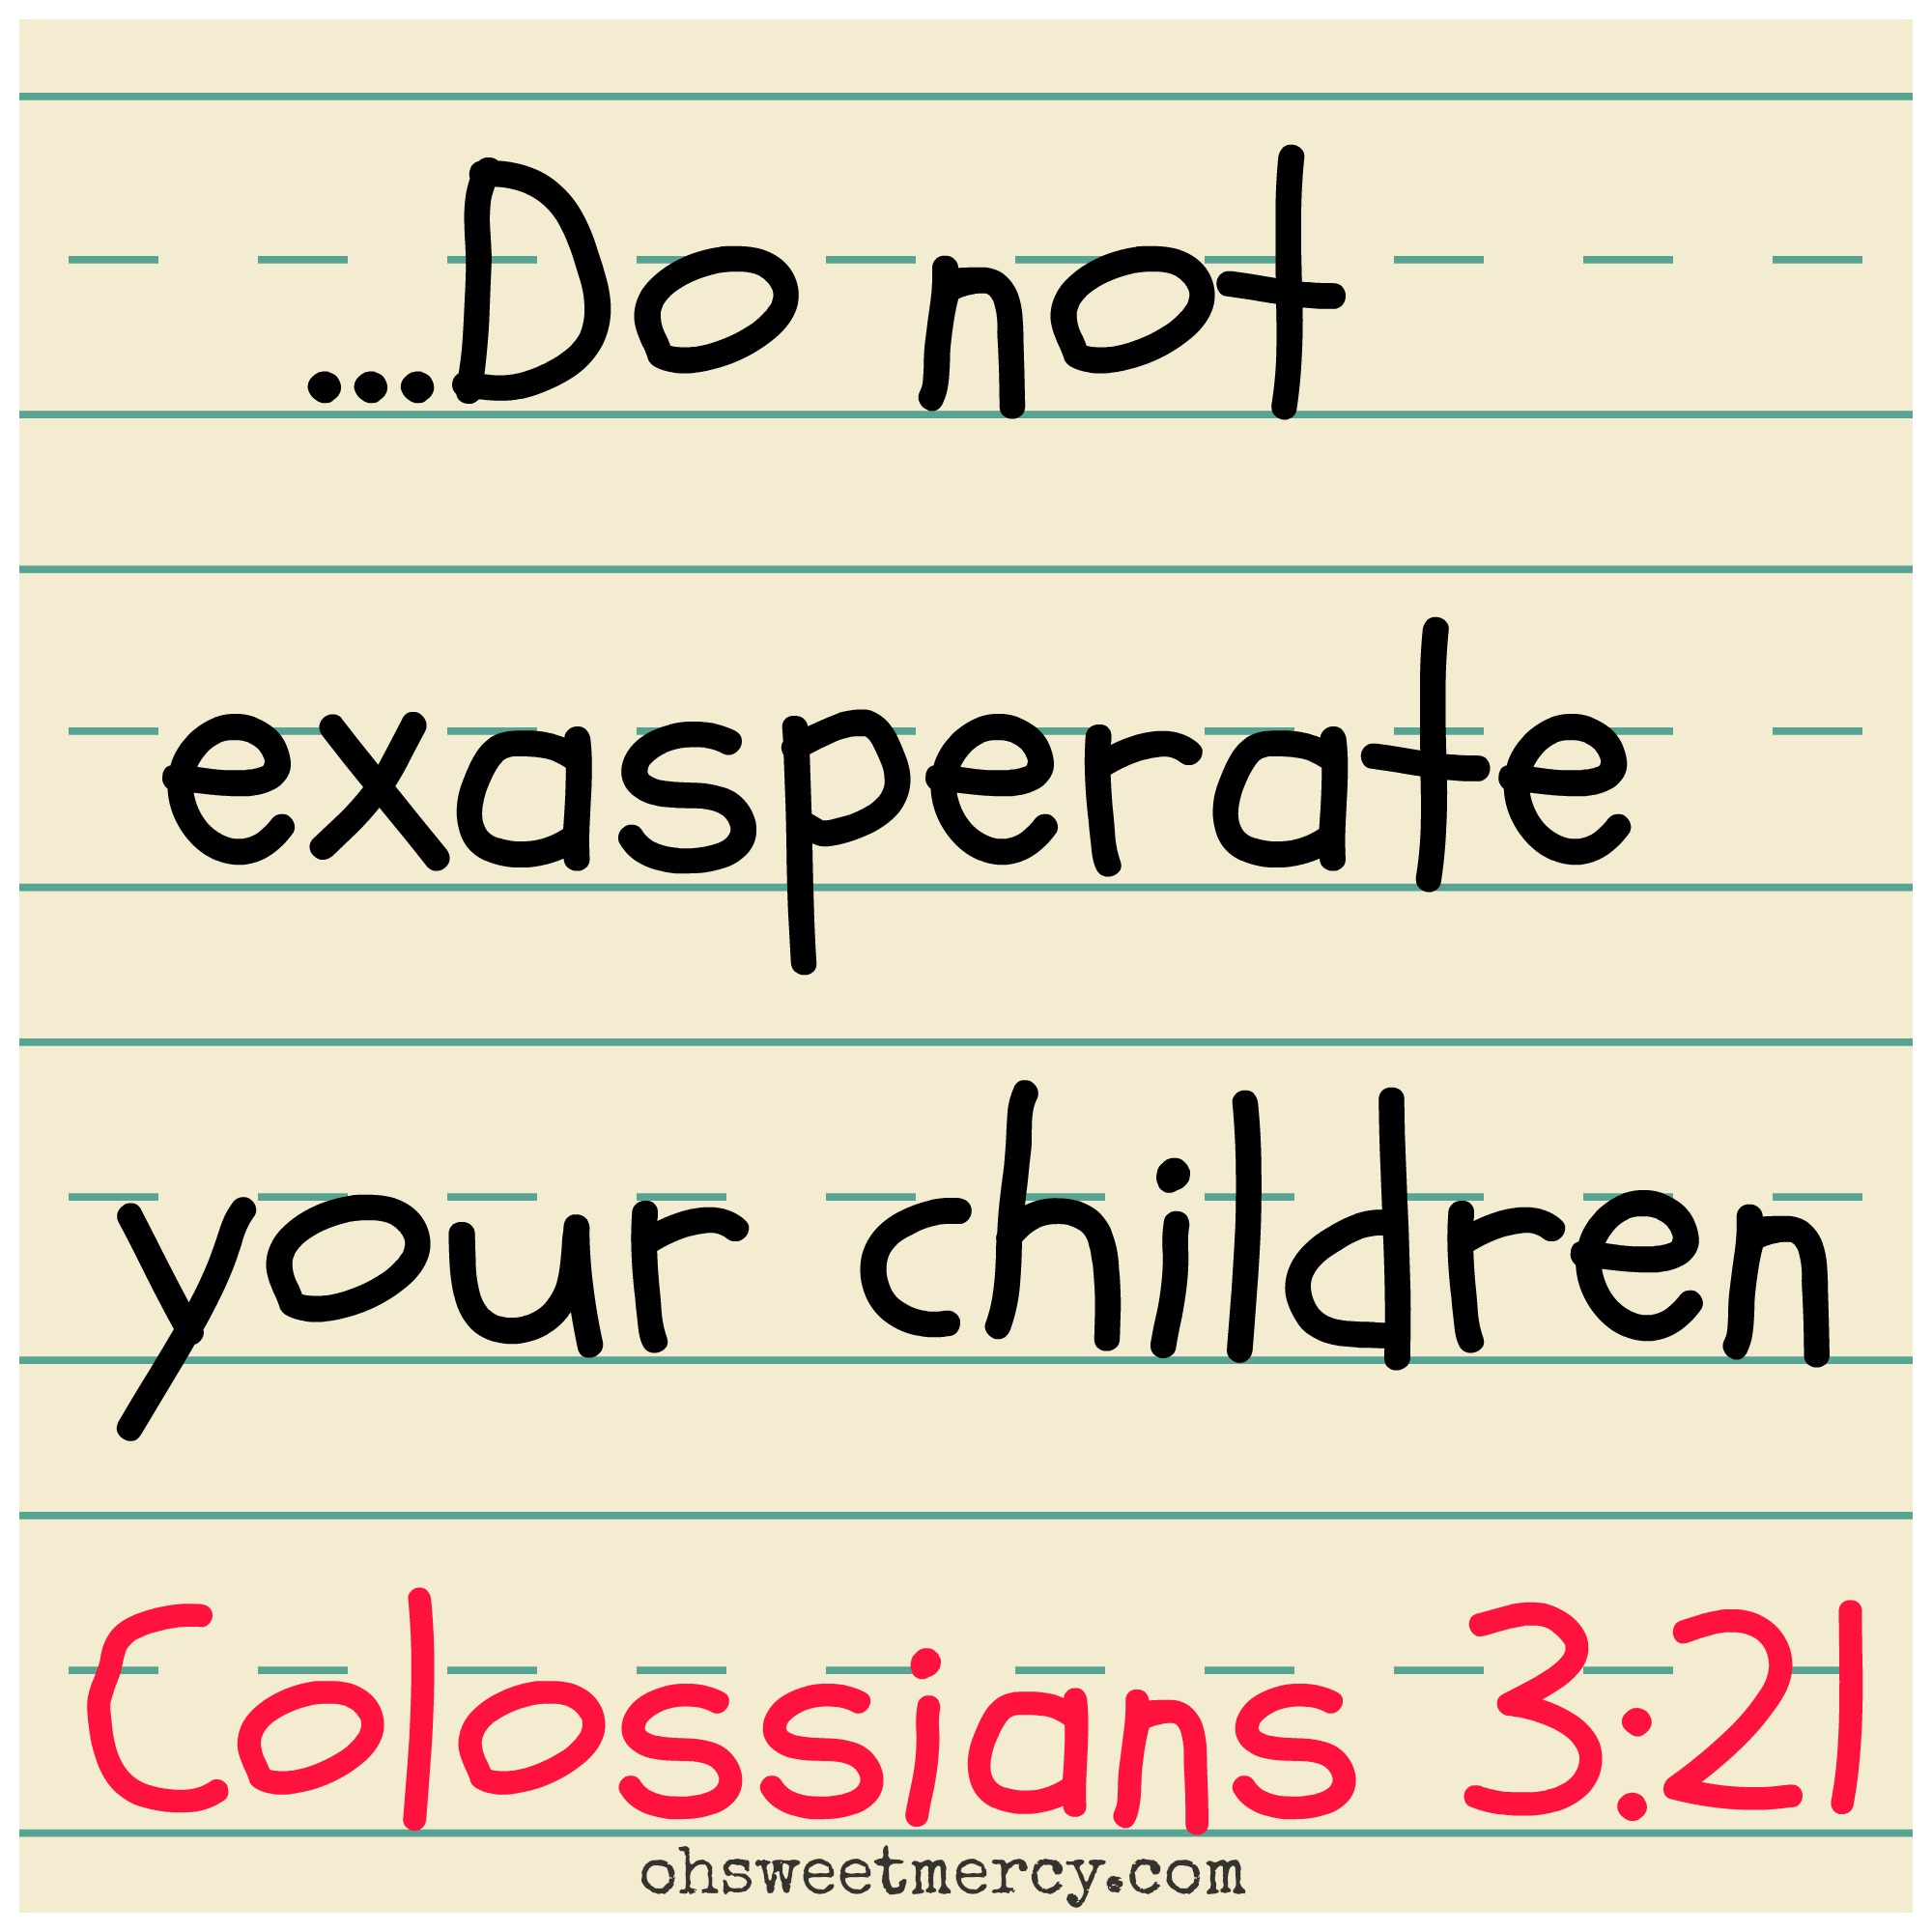 Colossians 321